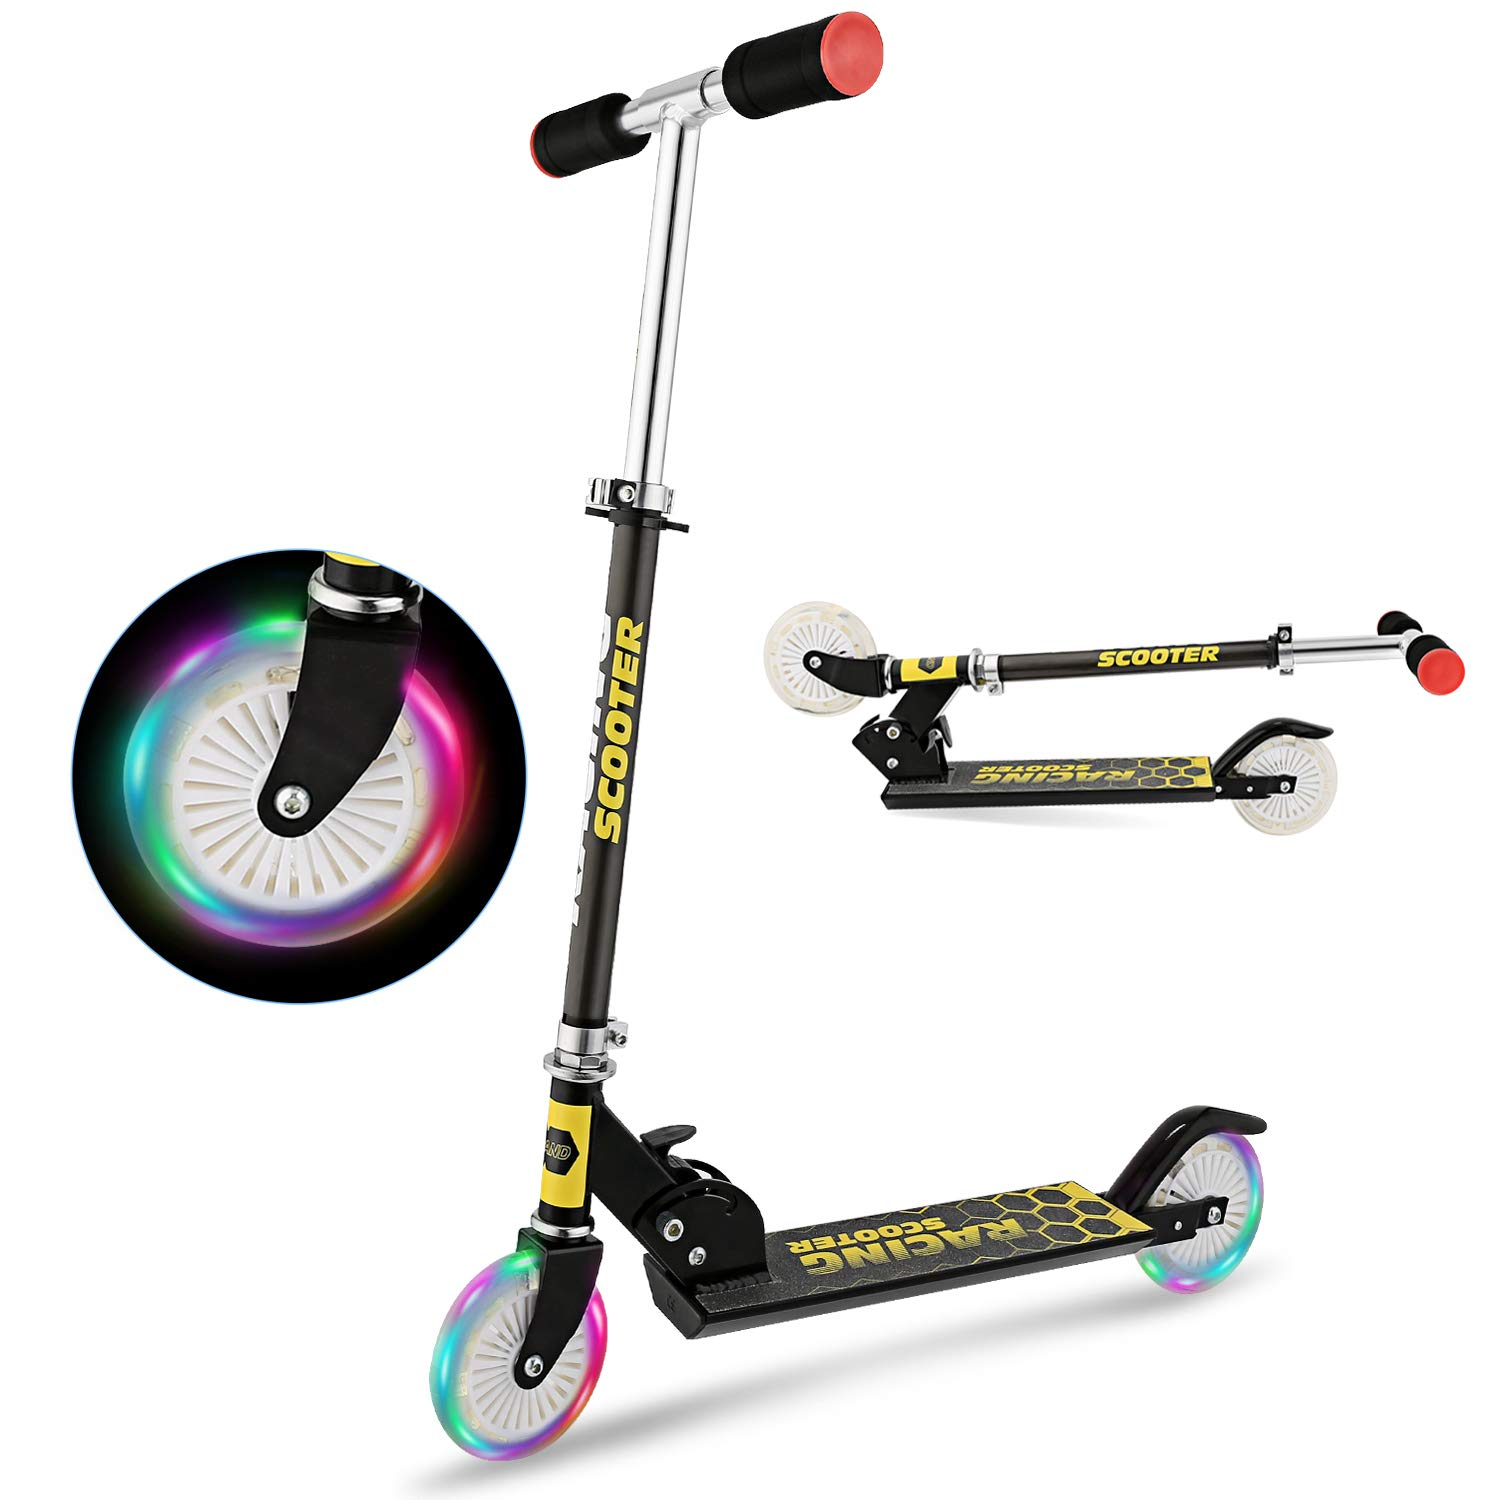 YUEBO Kick Scooter for Kids with LED Light Up Wheels, Adjustable Height, Lightweight Folding Kids Scooters 2 Wheel for Girls Boys, Rear Fender Break, 110lb Weight Capacity by YUEBO